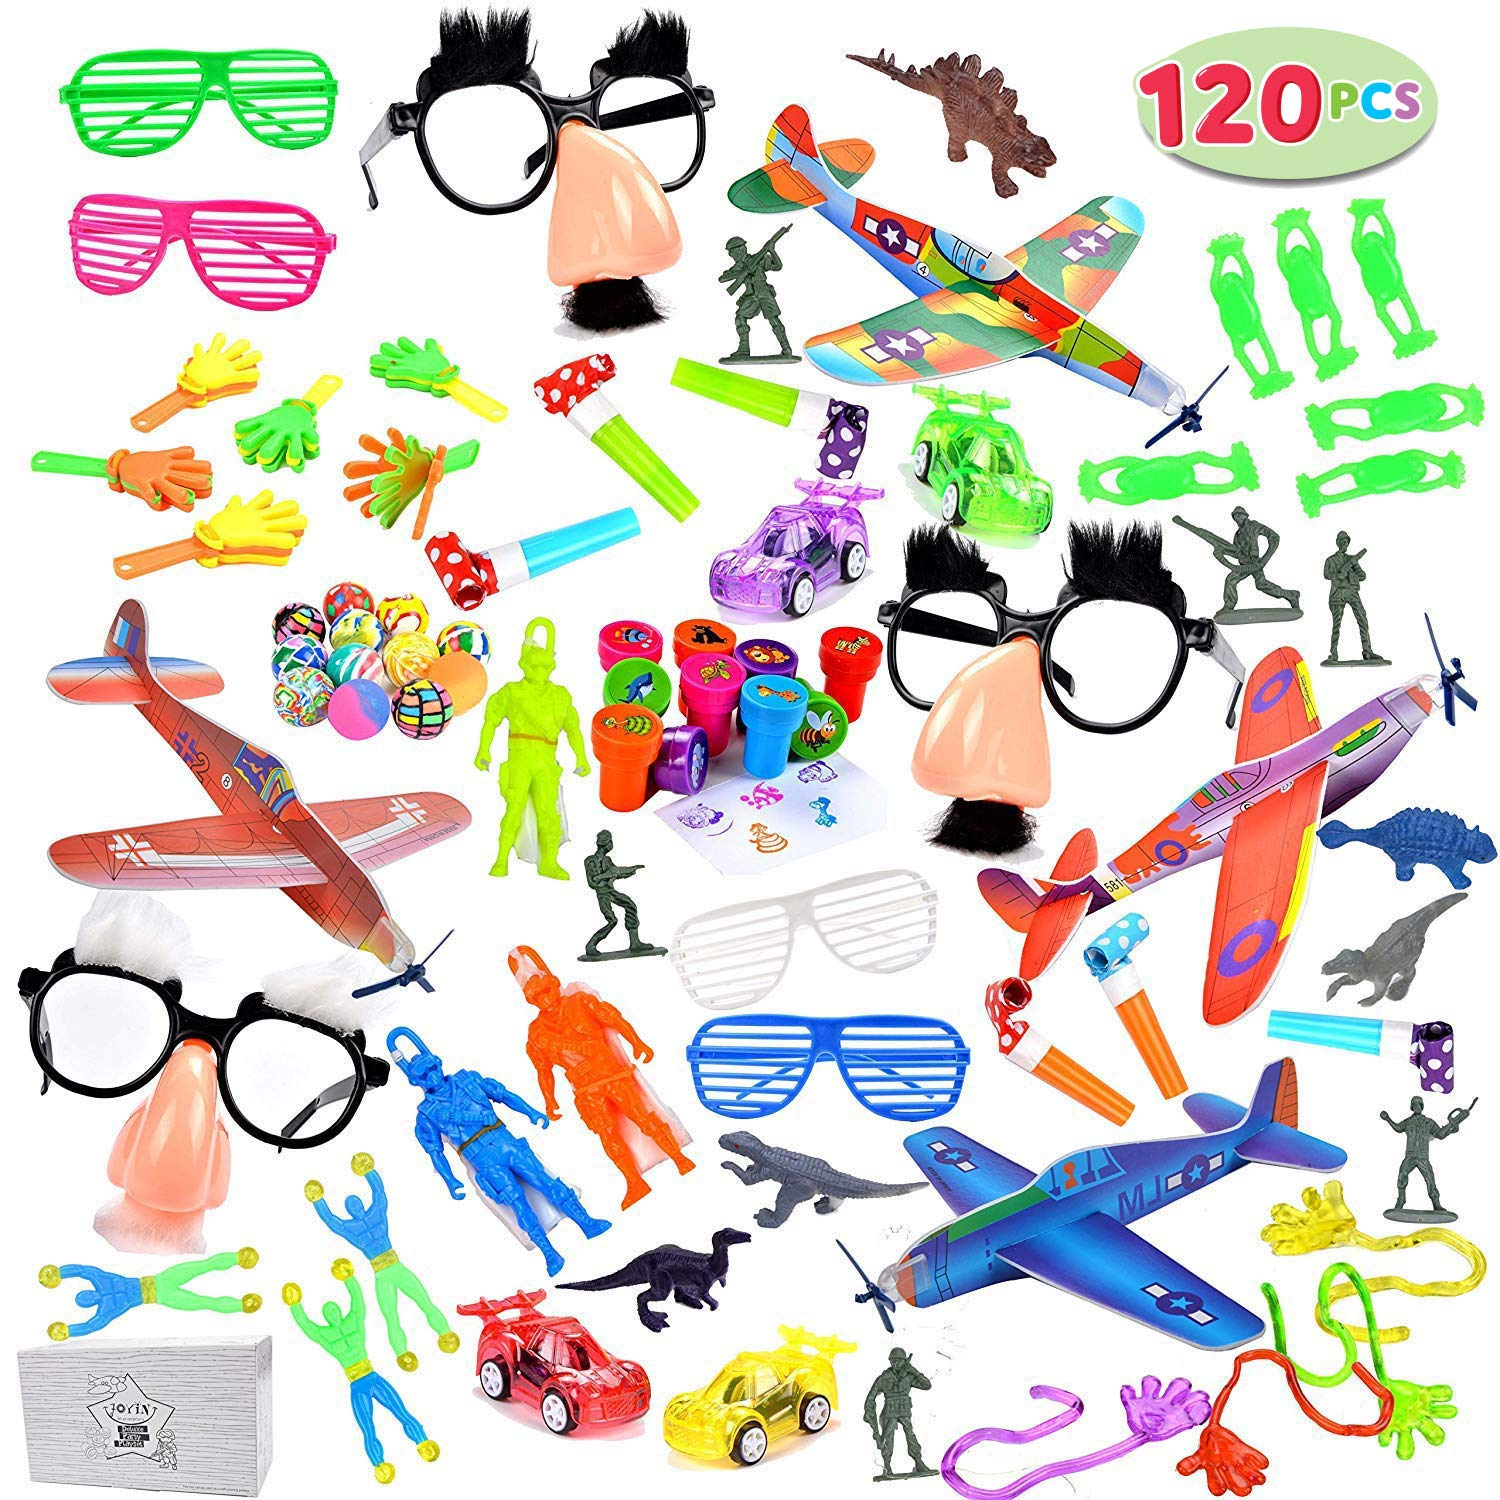 Joyin Toy 120 Pc Party Favor Toy Assortment for Kids Party Favor, Birthday Party, School Classroom Rewards, Carnival Prizes, Pinata Fillers, Easter Egg Stuffers by JOYIN